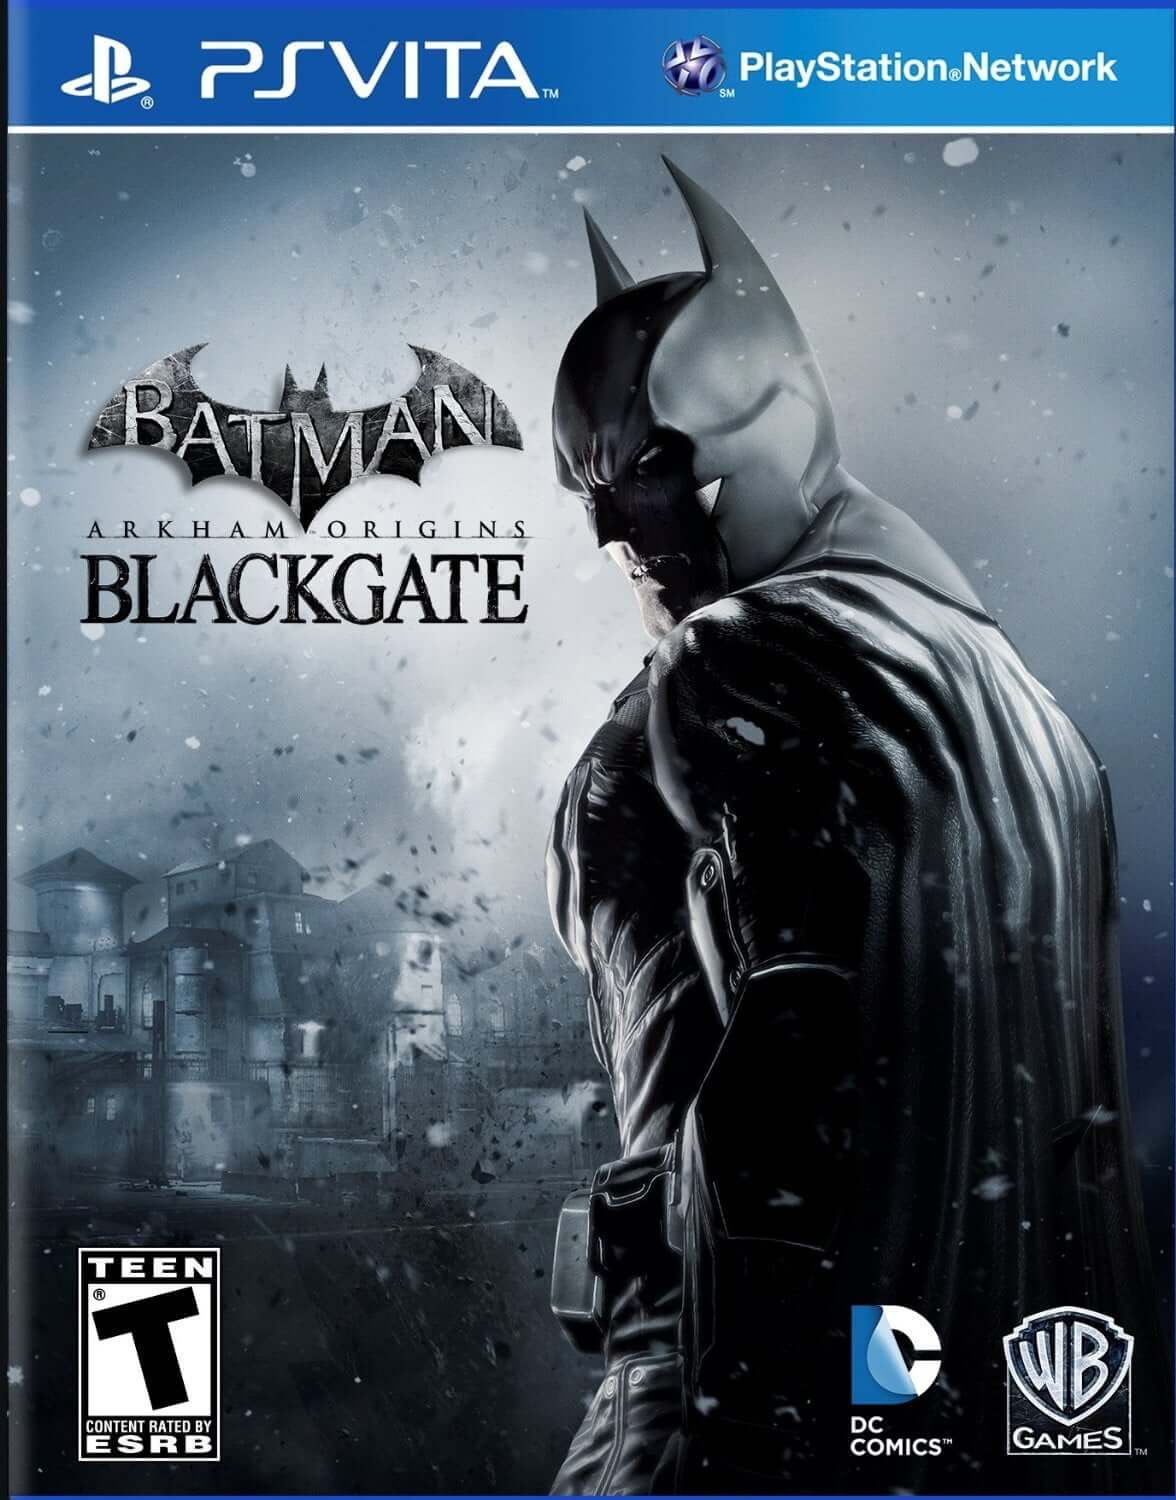 Buy BatMan Black Gate a PS Vita from ShamyStores